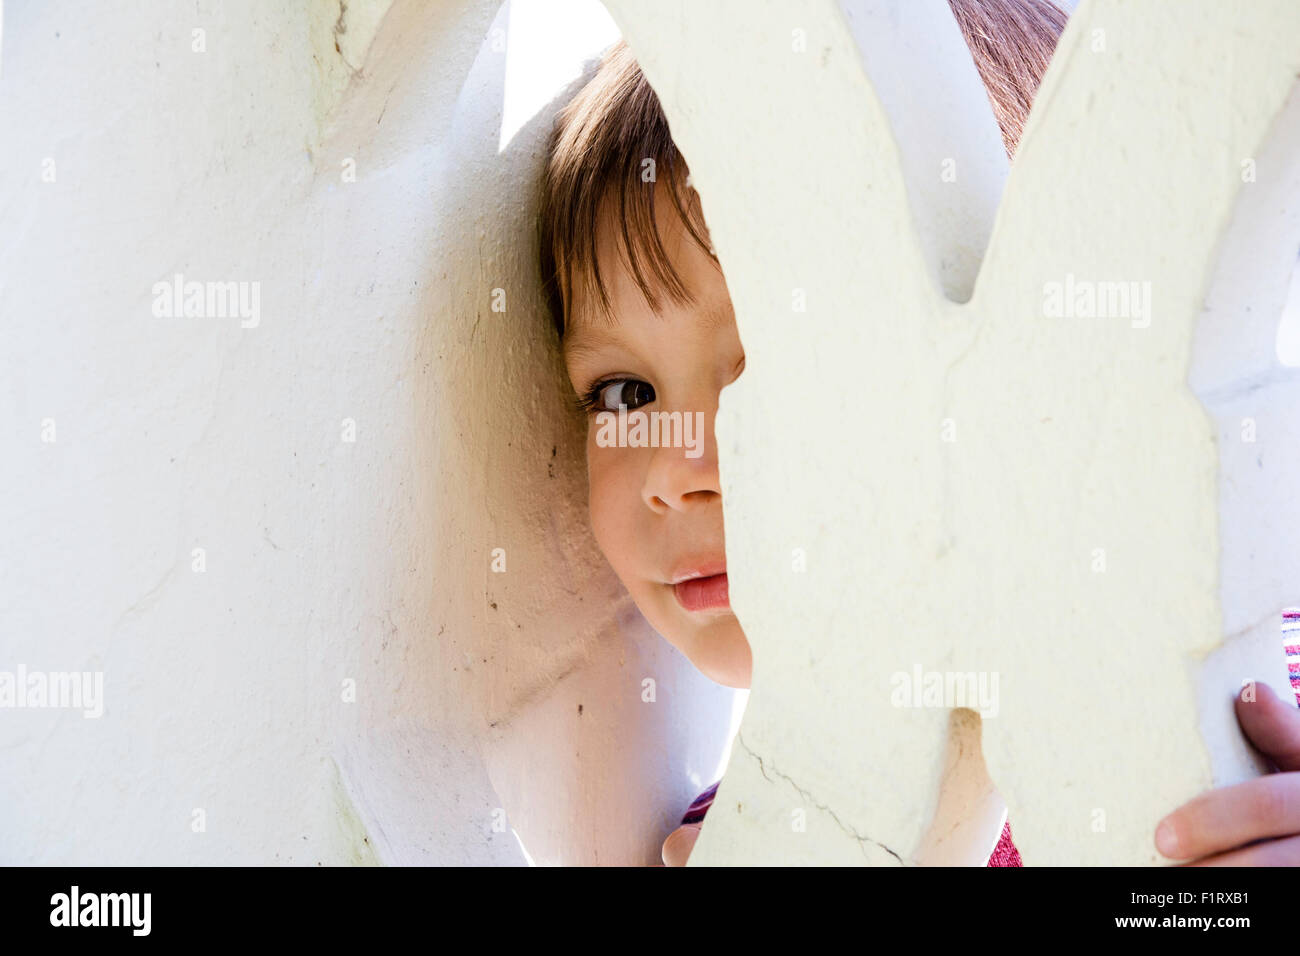 3 to 5 year old Caucasian boy. Outdoor. Half hidden face peeking through gap in wall, looking at viewer. - Stock Image